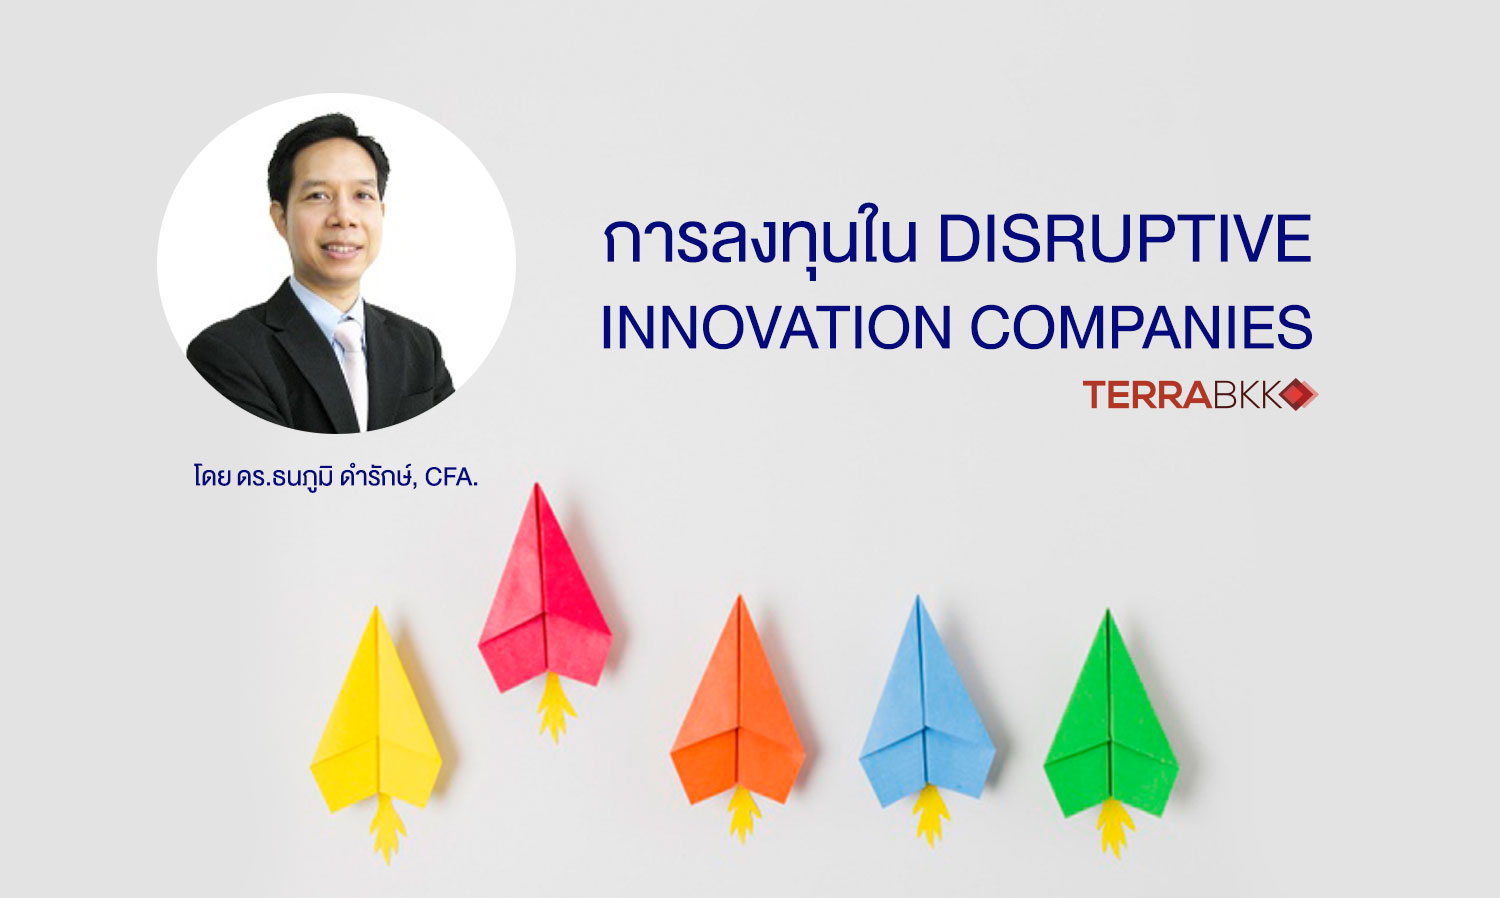 การลงทุนใน disruptive innovation companies